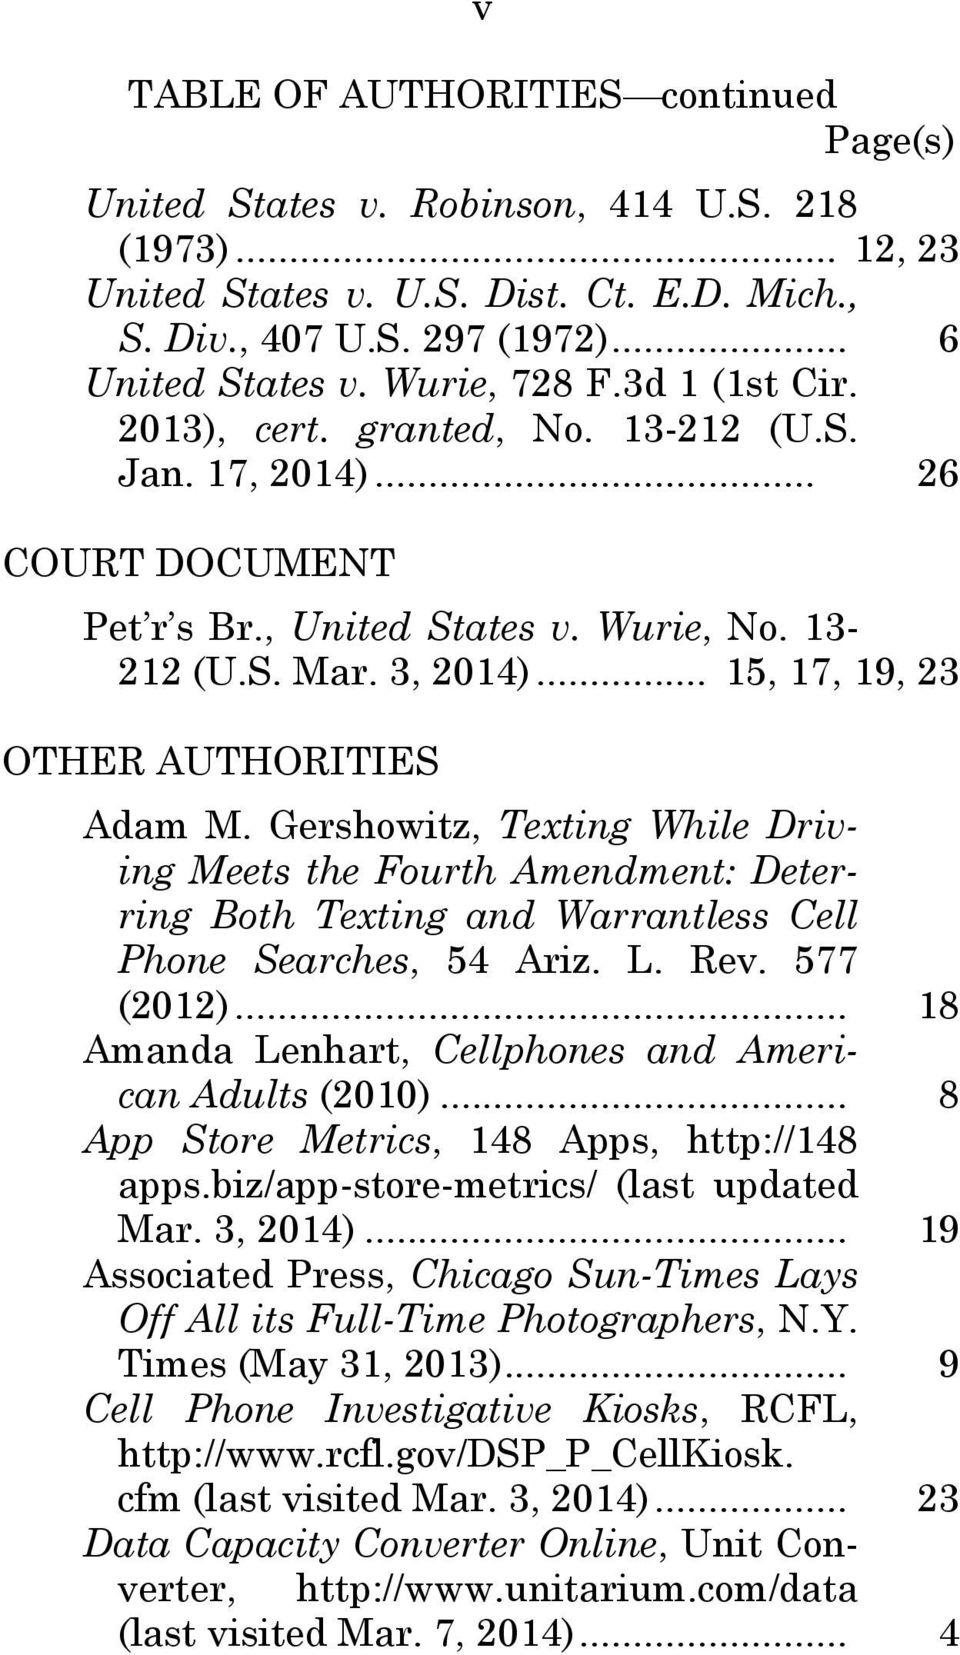 .. 15, 17, 19, 23 OTHER AUTHORITIES Adam M. Gershowitz, Texting While Driving Meets the Fourth Amendment: Deterring Both Texting and Warrantless Cell Phone Searches, 54 Ariz. L. Rev. 577 (2012).